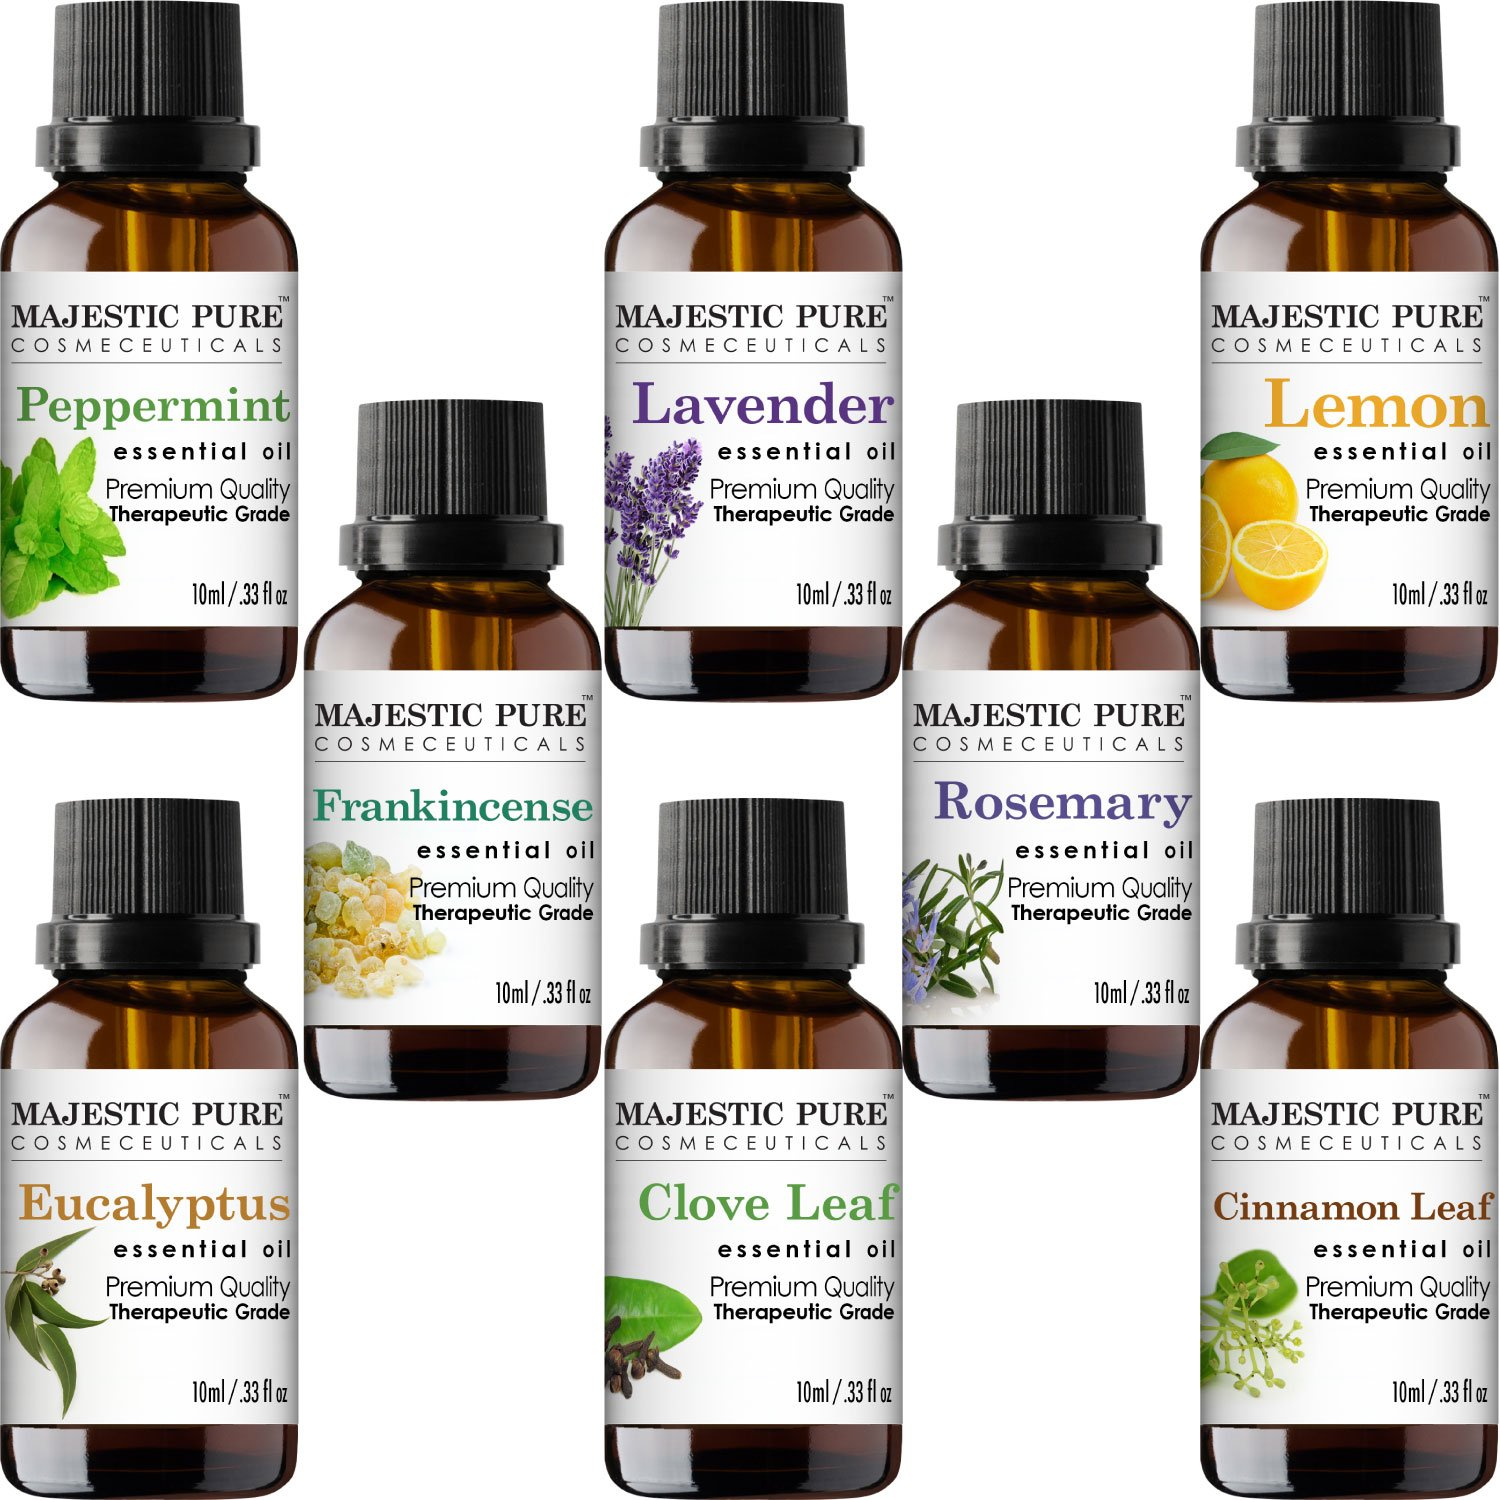 MajesticPure Aromatherapy Essential Oils Set, Includes Lavender, Frankincense, Peppermint, Eucalyptus, Lemon, Clove Leaf, Cinnamon Leaf & Rosemary Oils- Pack of 8-10 ml each by Majestic Pure (Image #1)